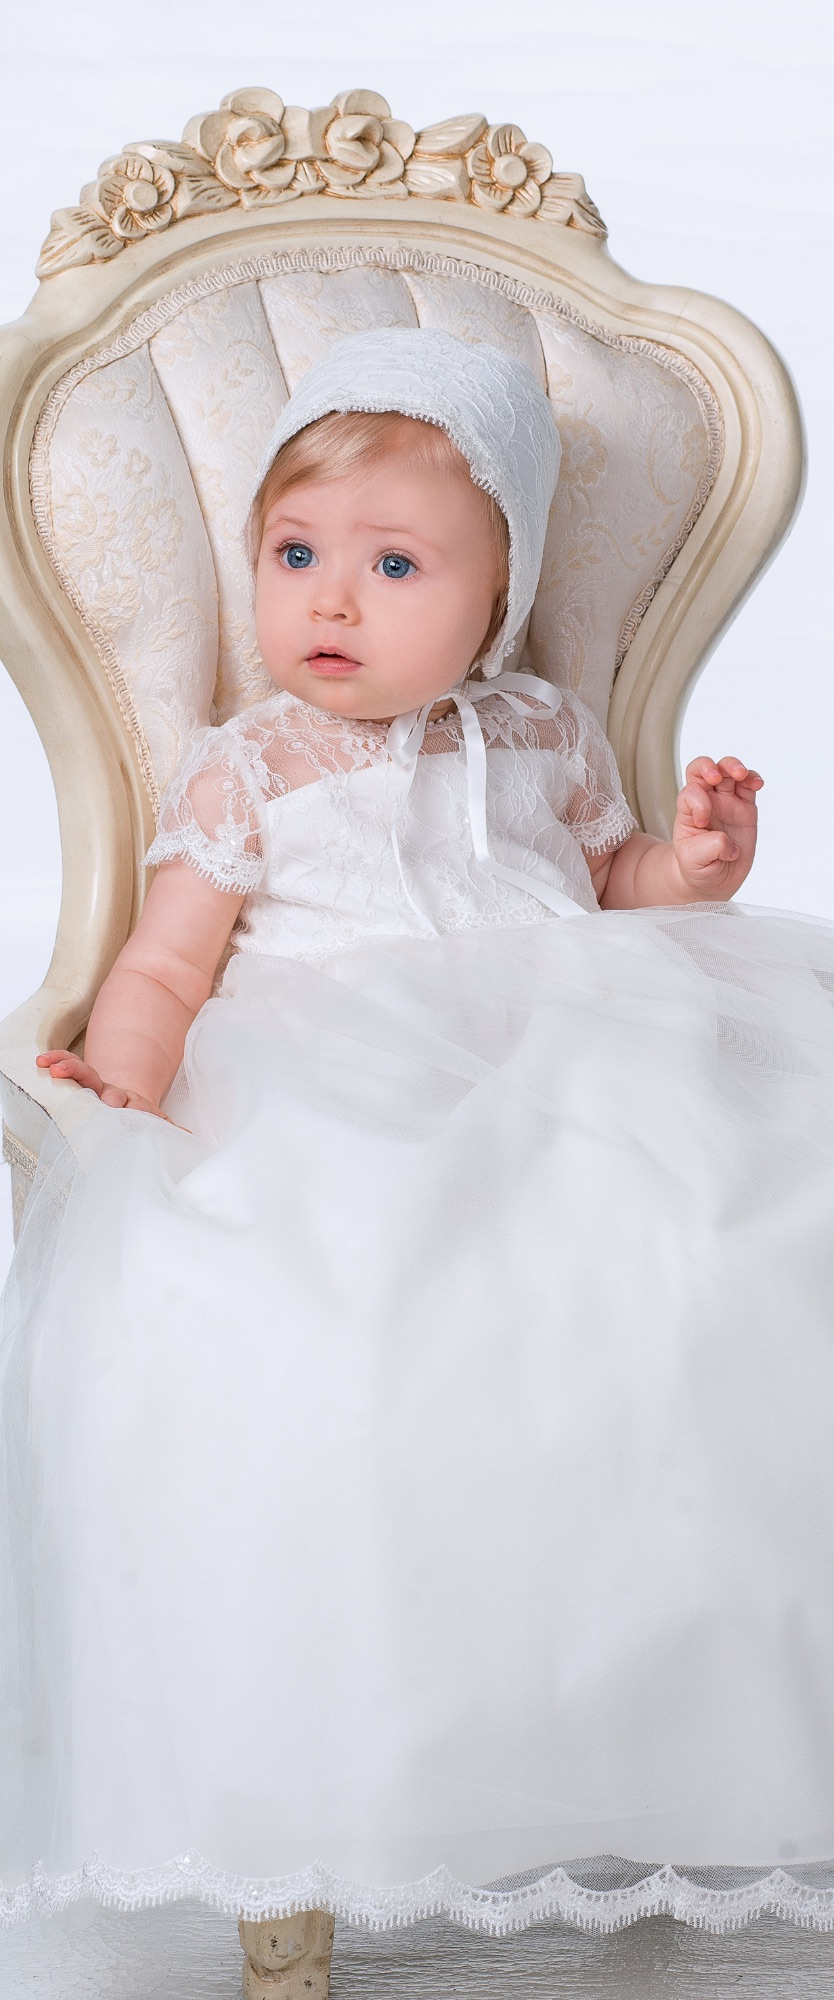 ad421def2b68 White lace heirloom girls christening gown by Sarah Louise 1095